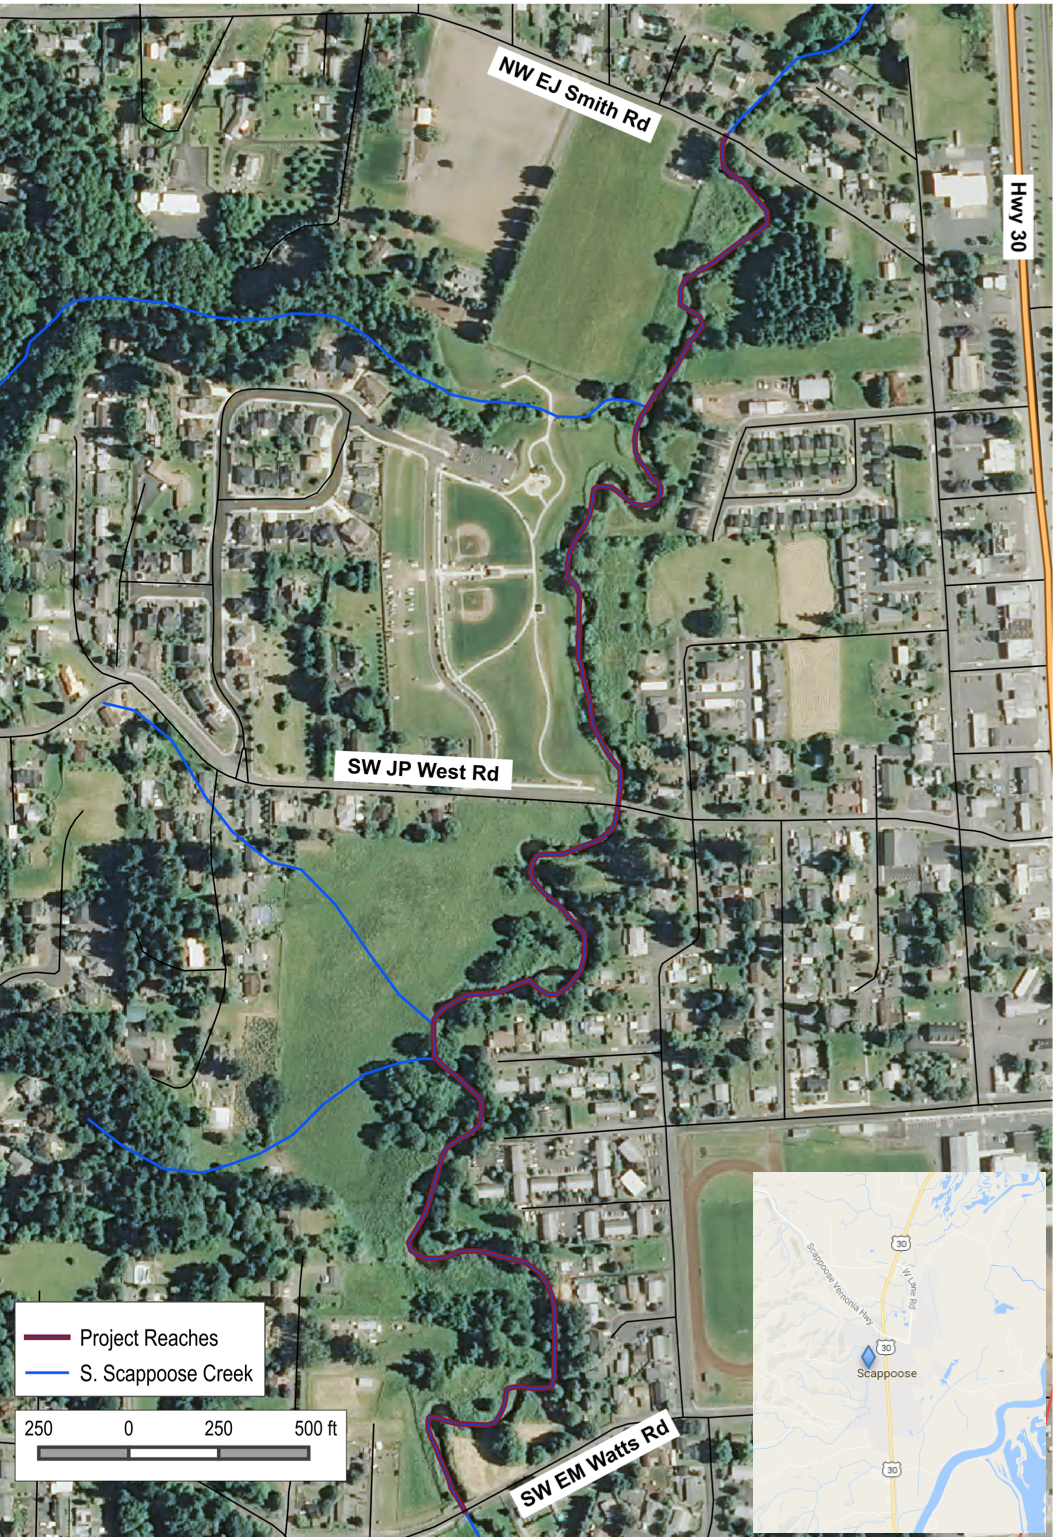 Project site in City of Scappoose